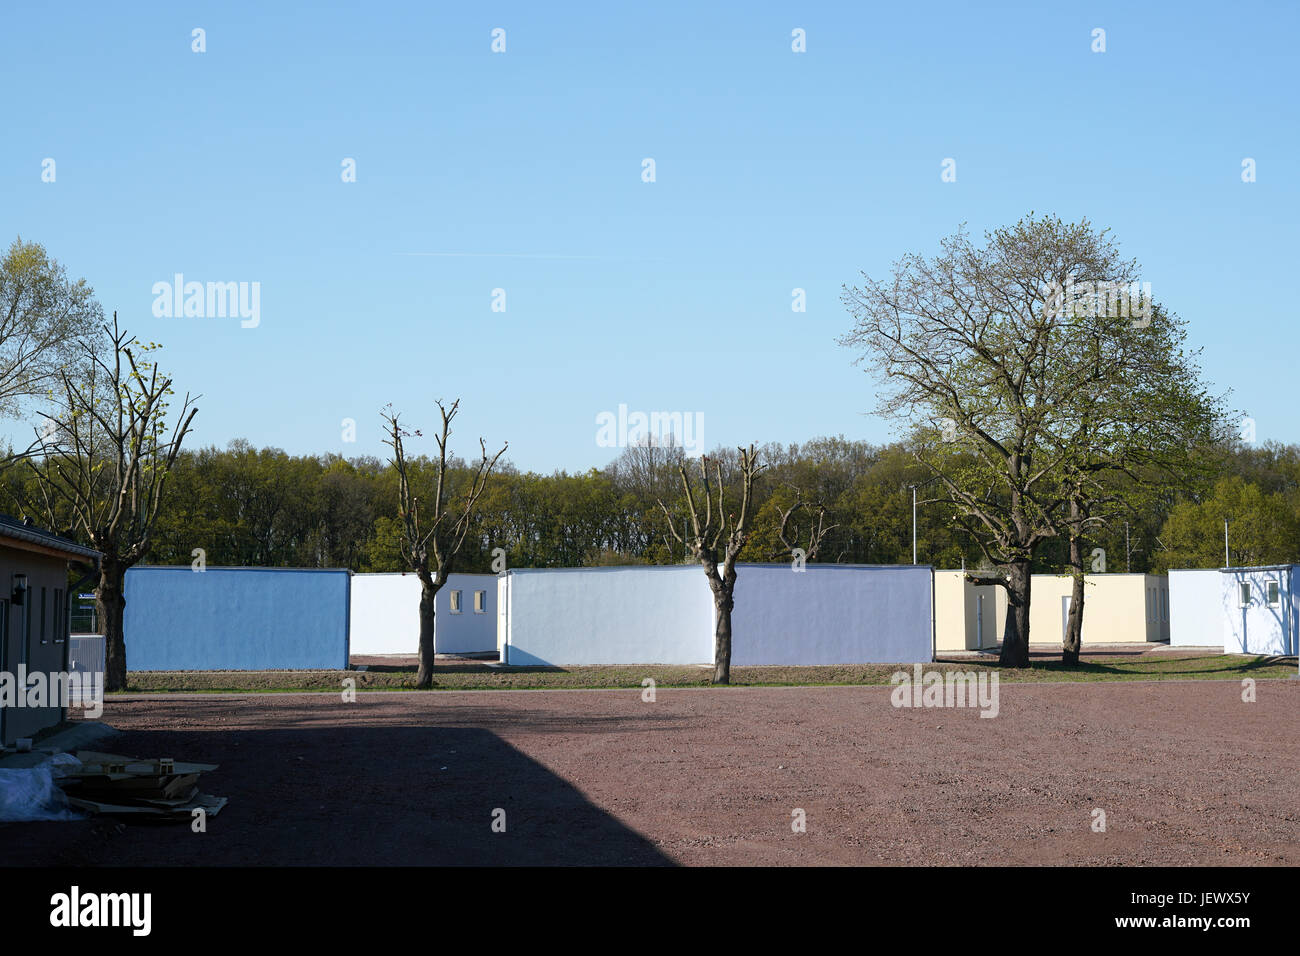 temporary shelters in Magdeburg - Stock Image